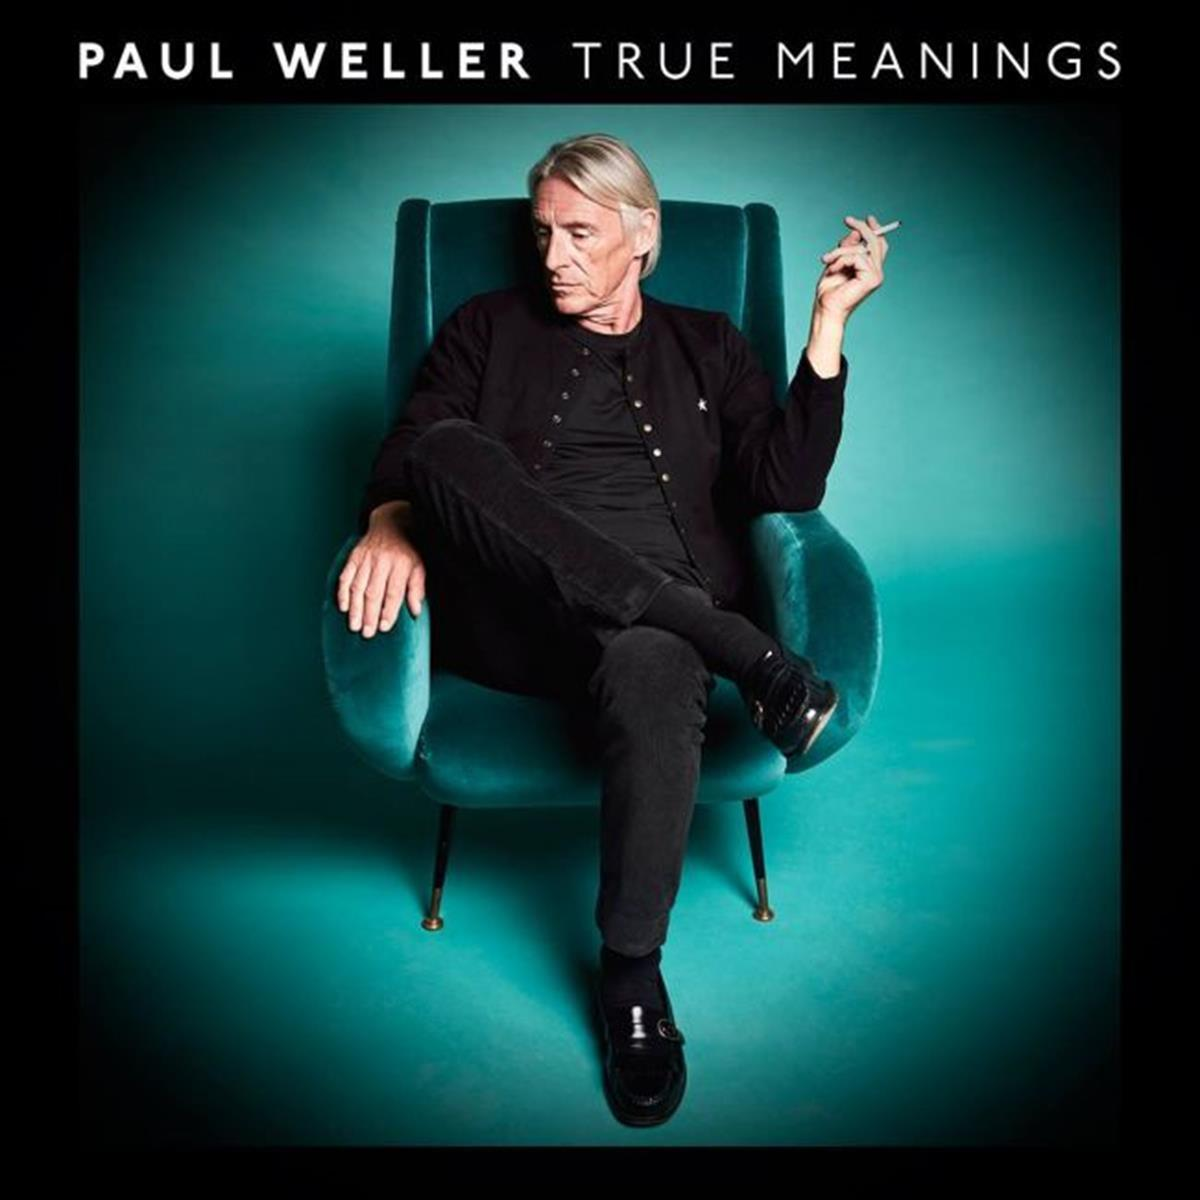 Paul Weller's new album 'True Meanings' cover art. Image courtesy of Parlophone / Paul Weller